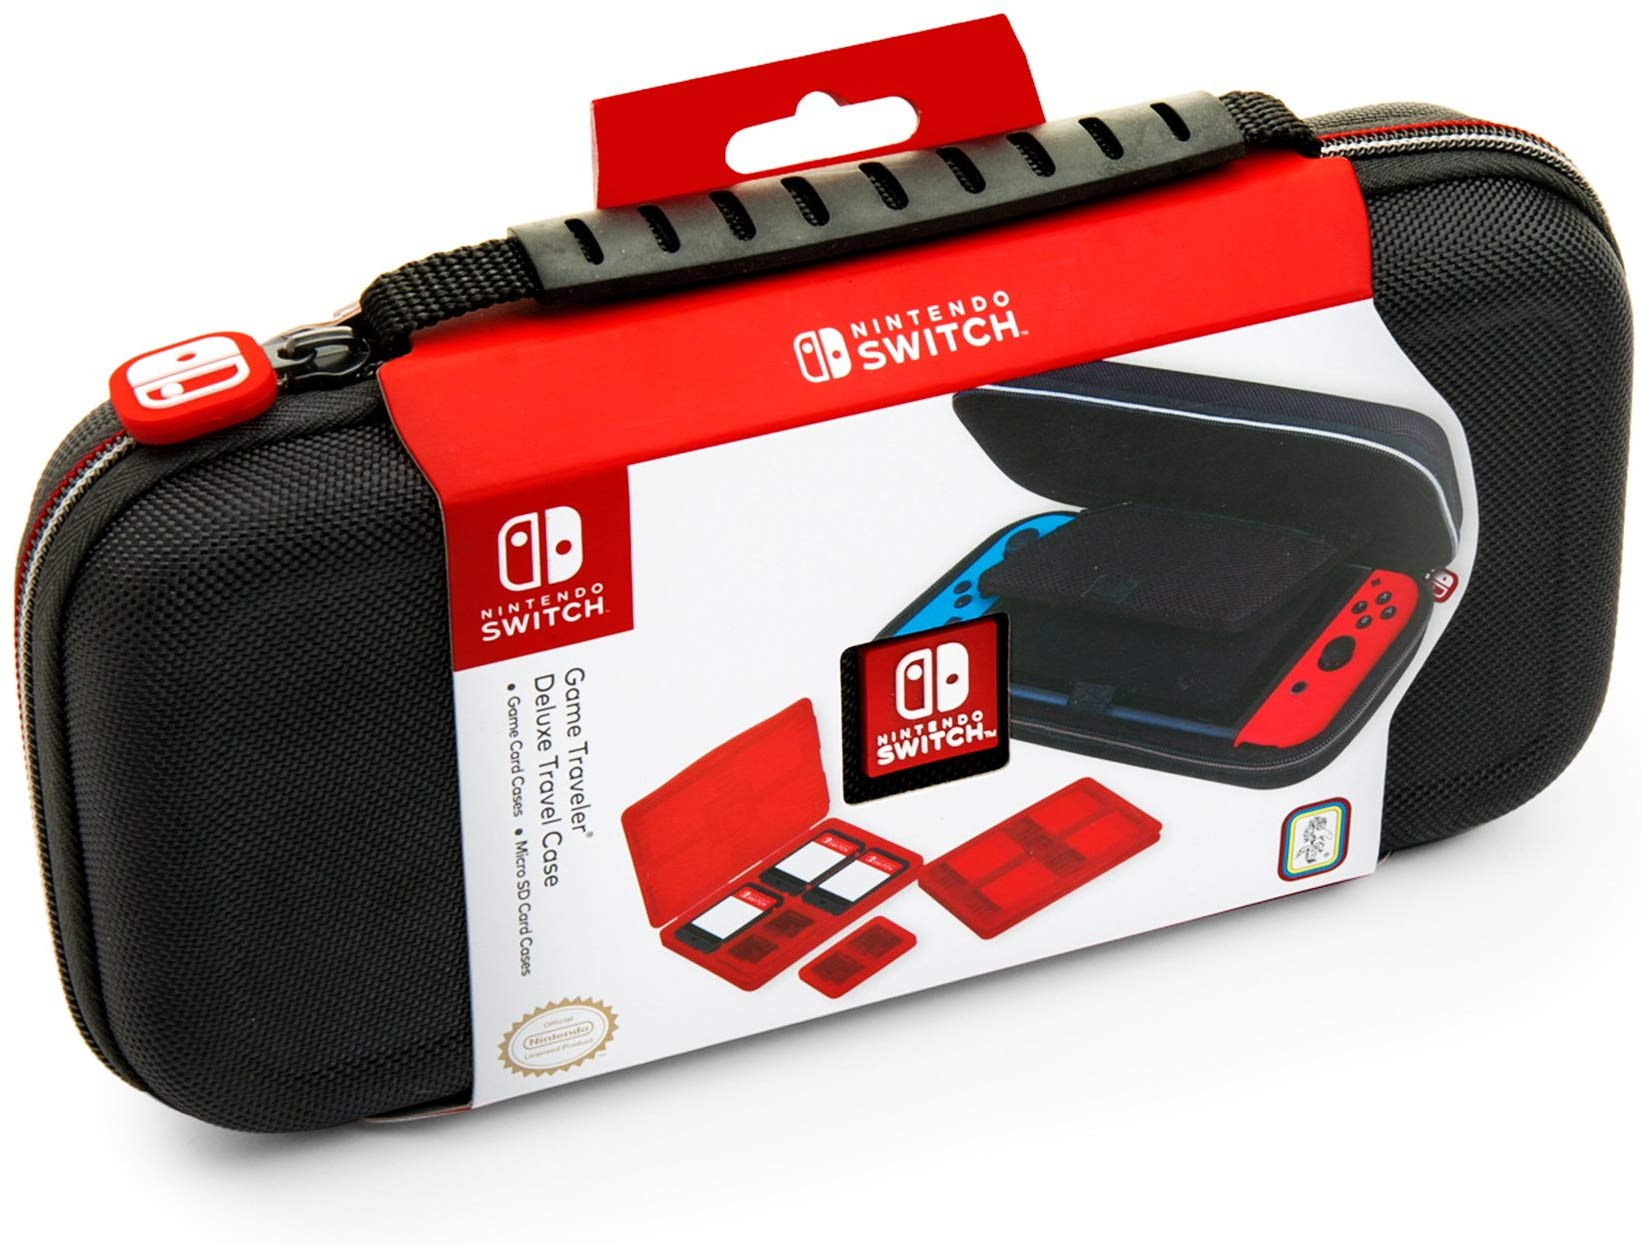 Carrying case for Nintendo Switch